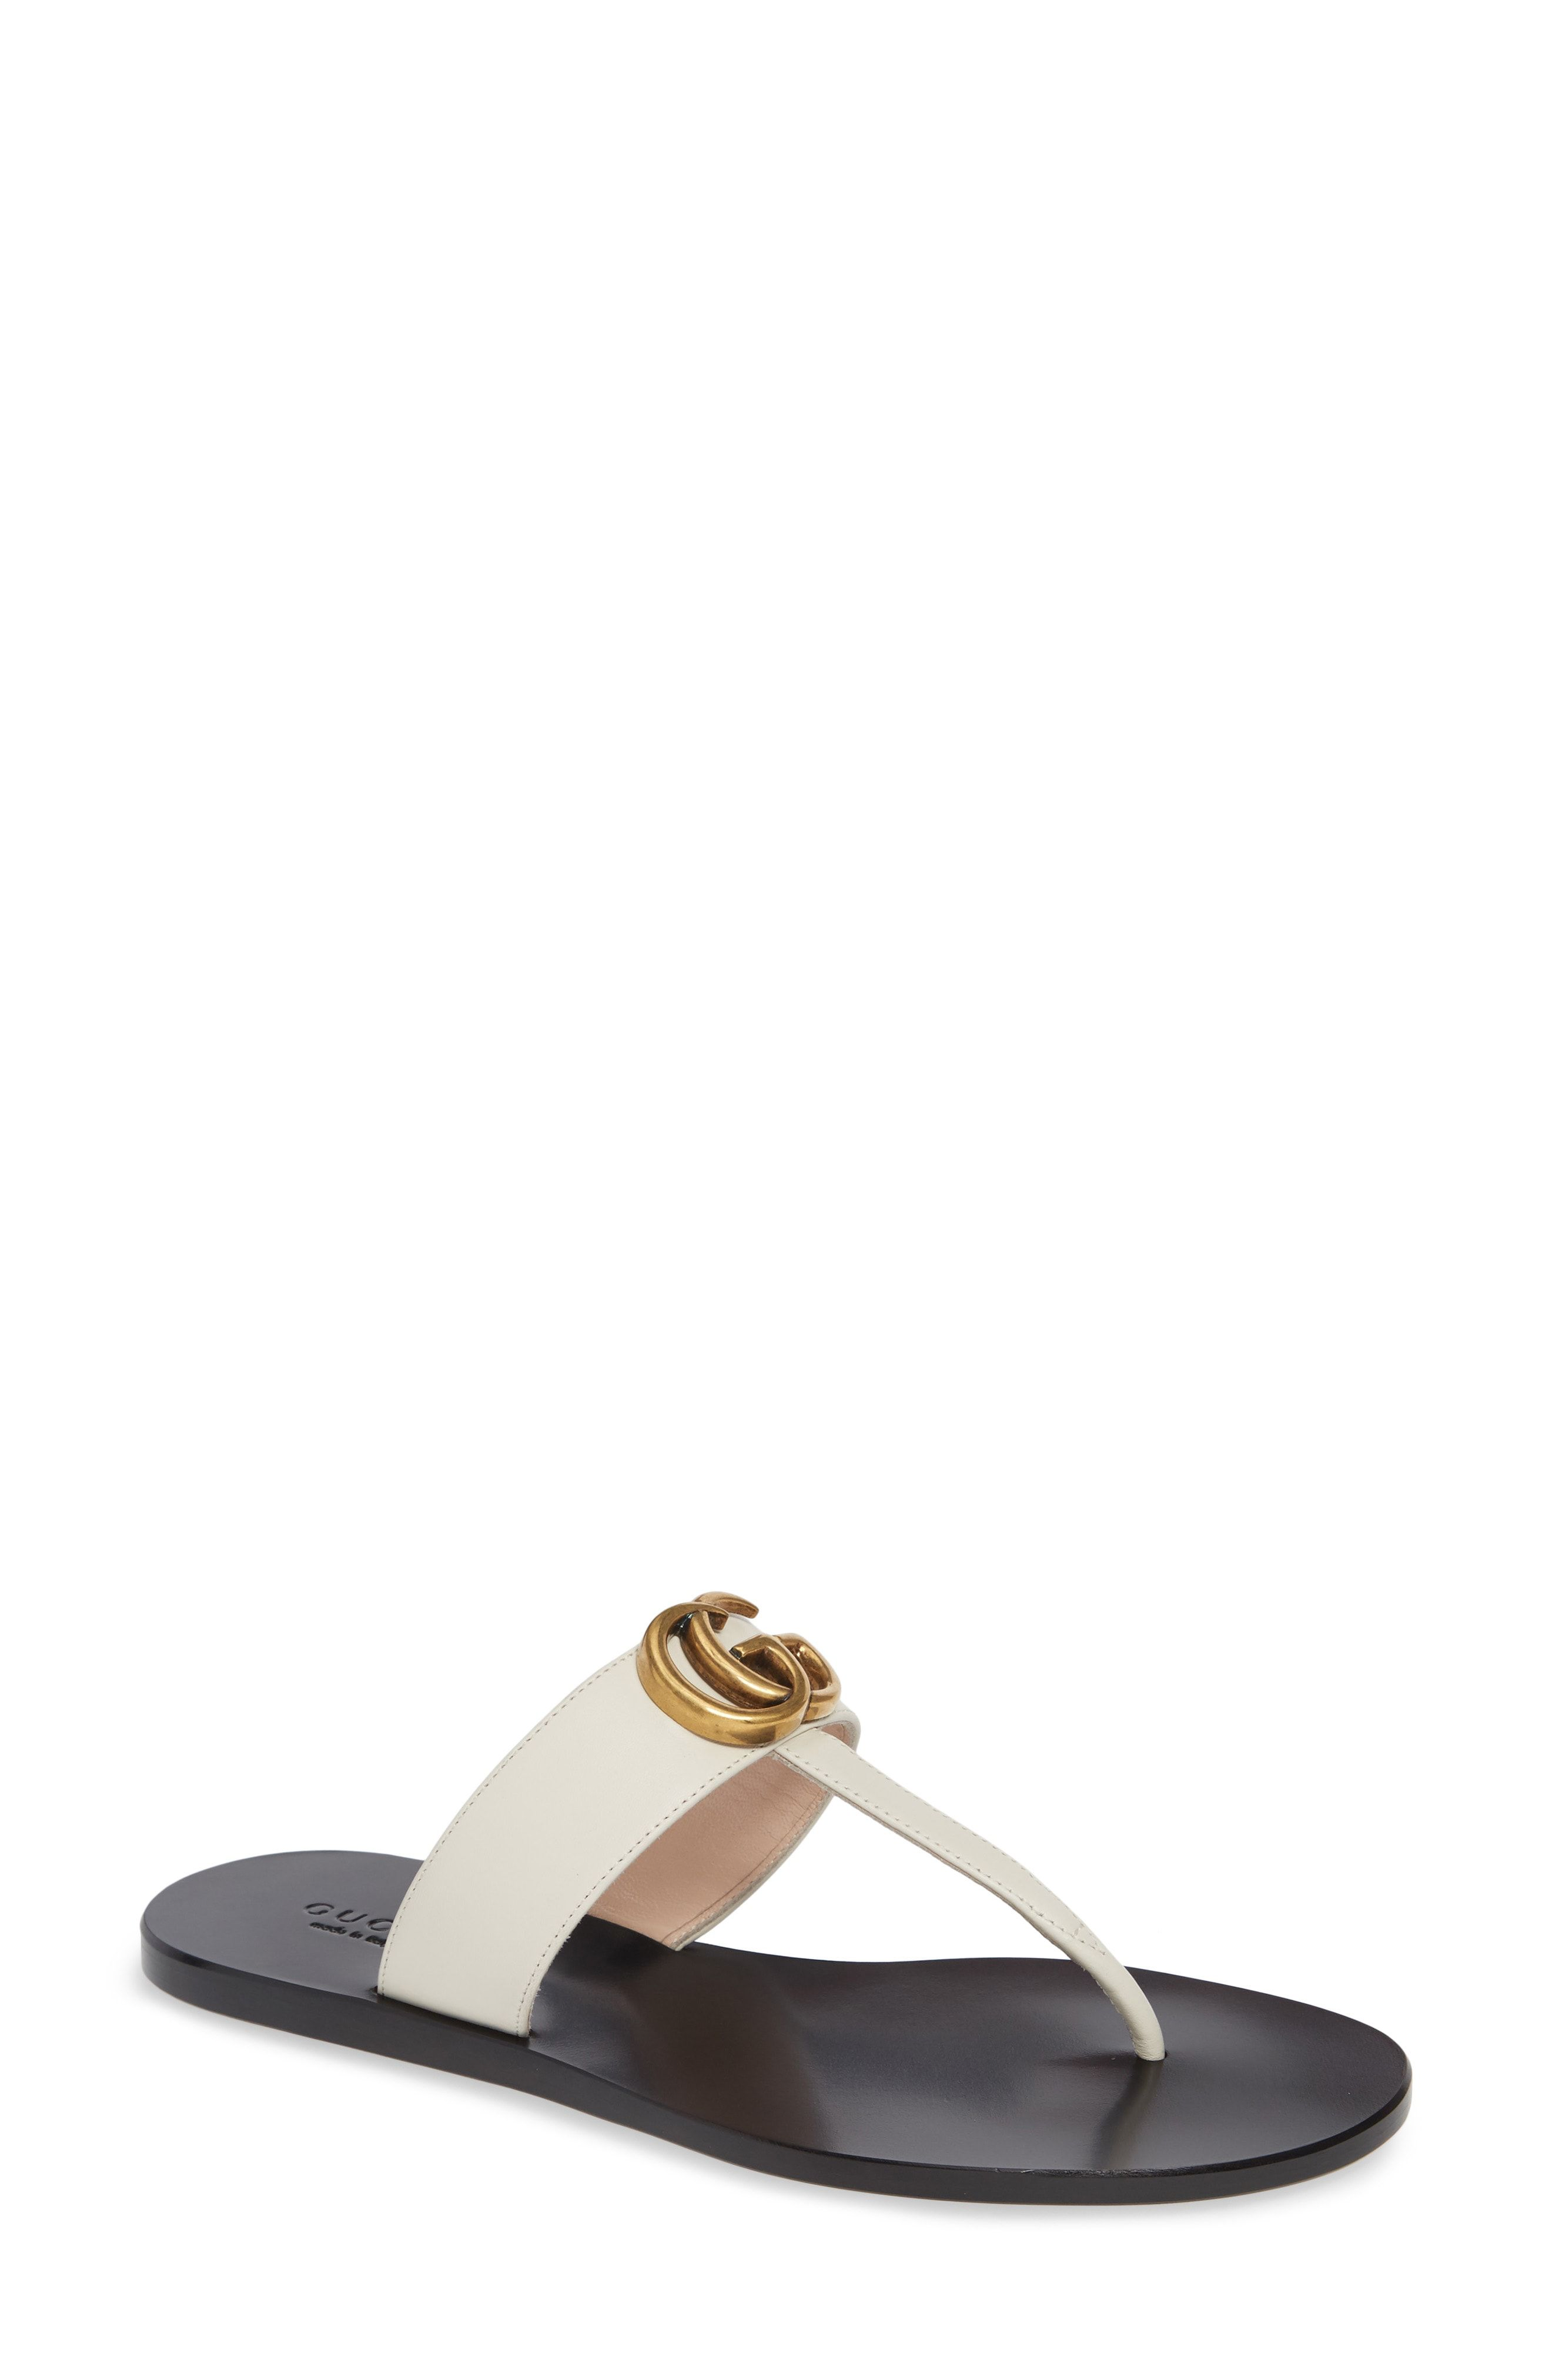 b3ba9febe75 Gucci T-Strap Sandal available at  Nordstrom